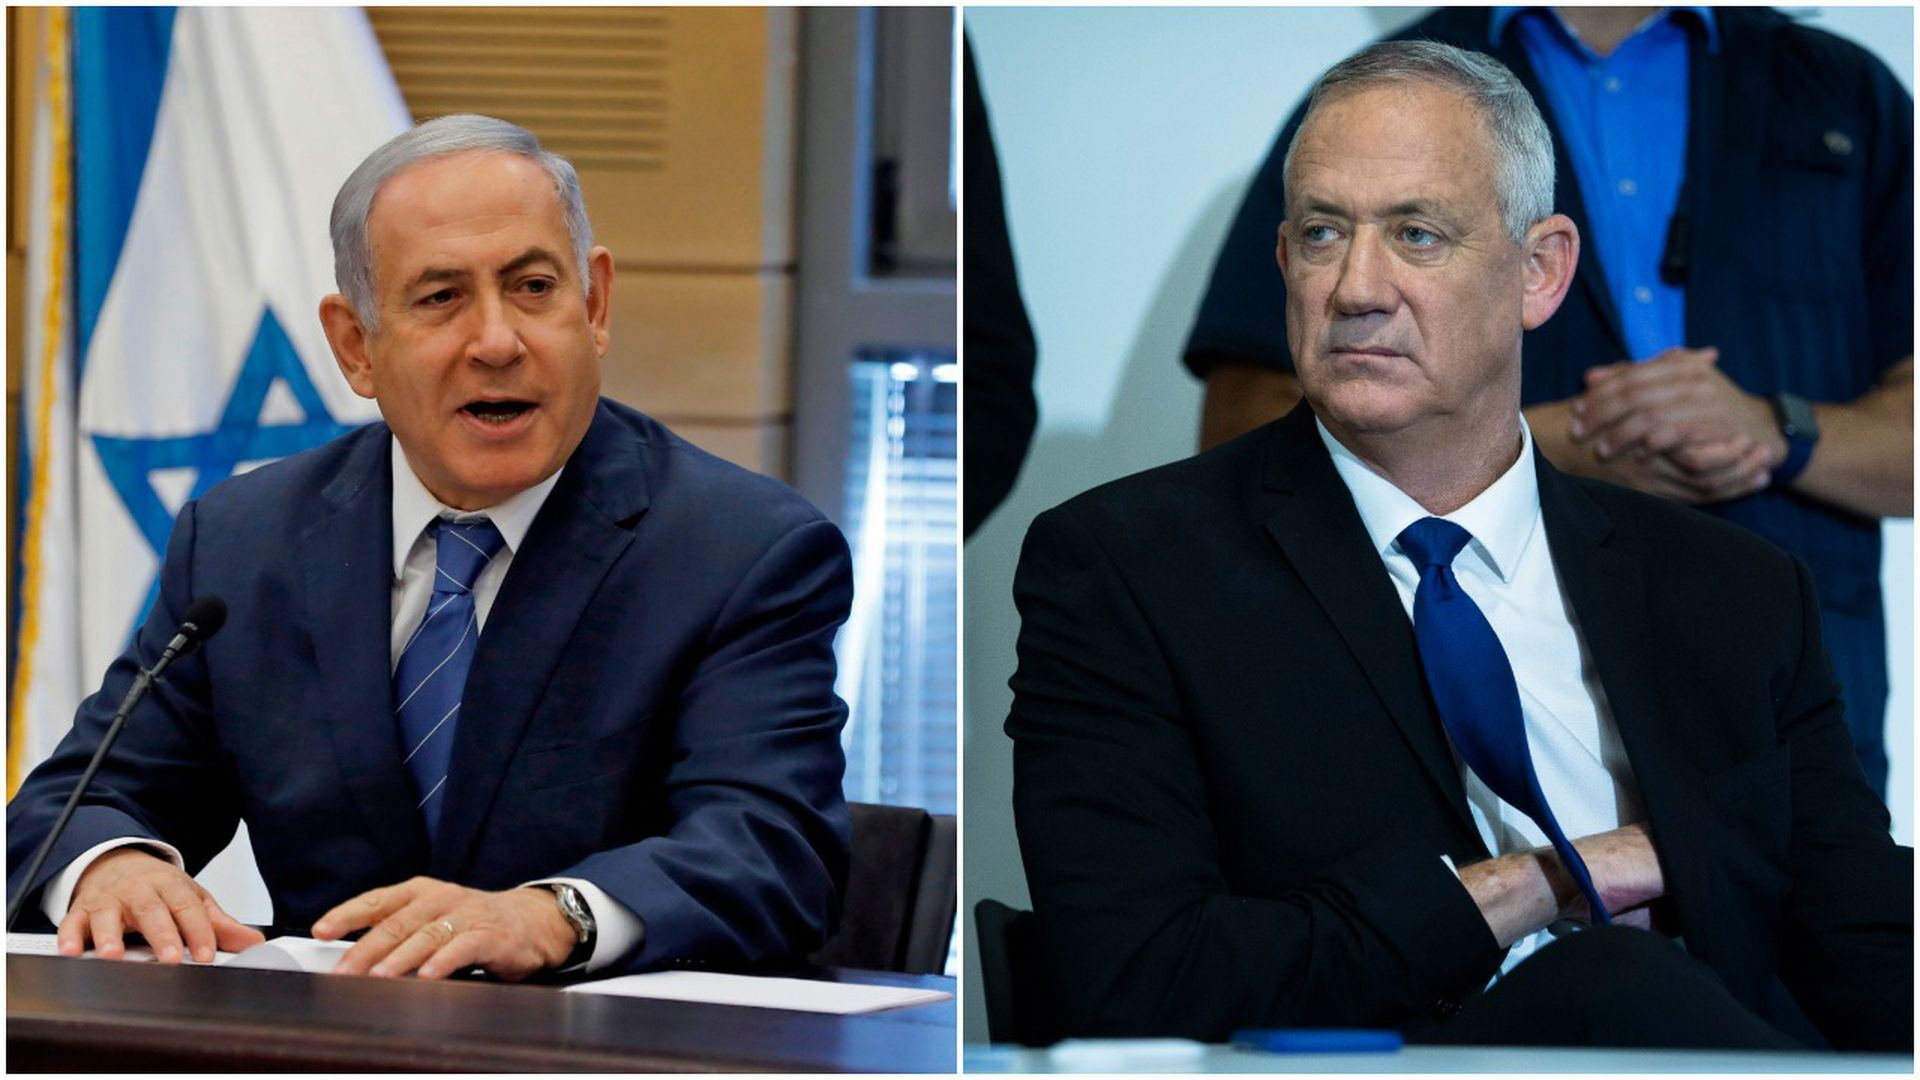 Netanyahu and rival Gantz clinch Israel power-sharing deal